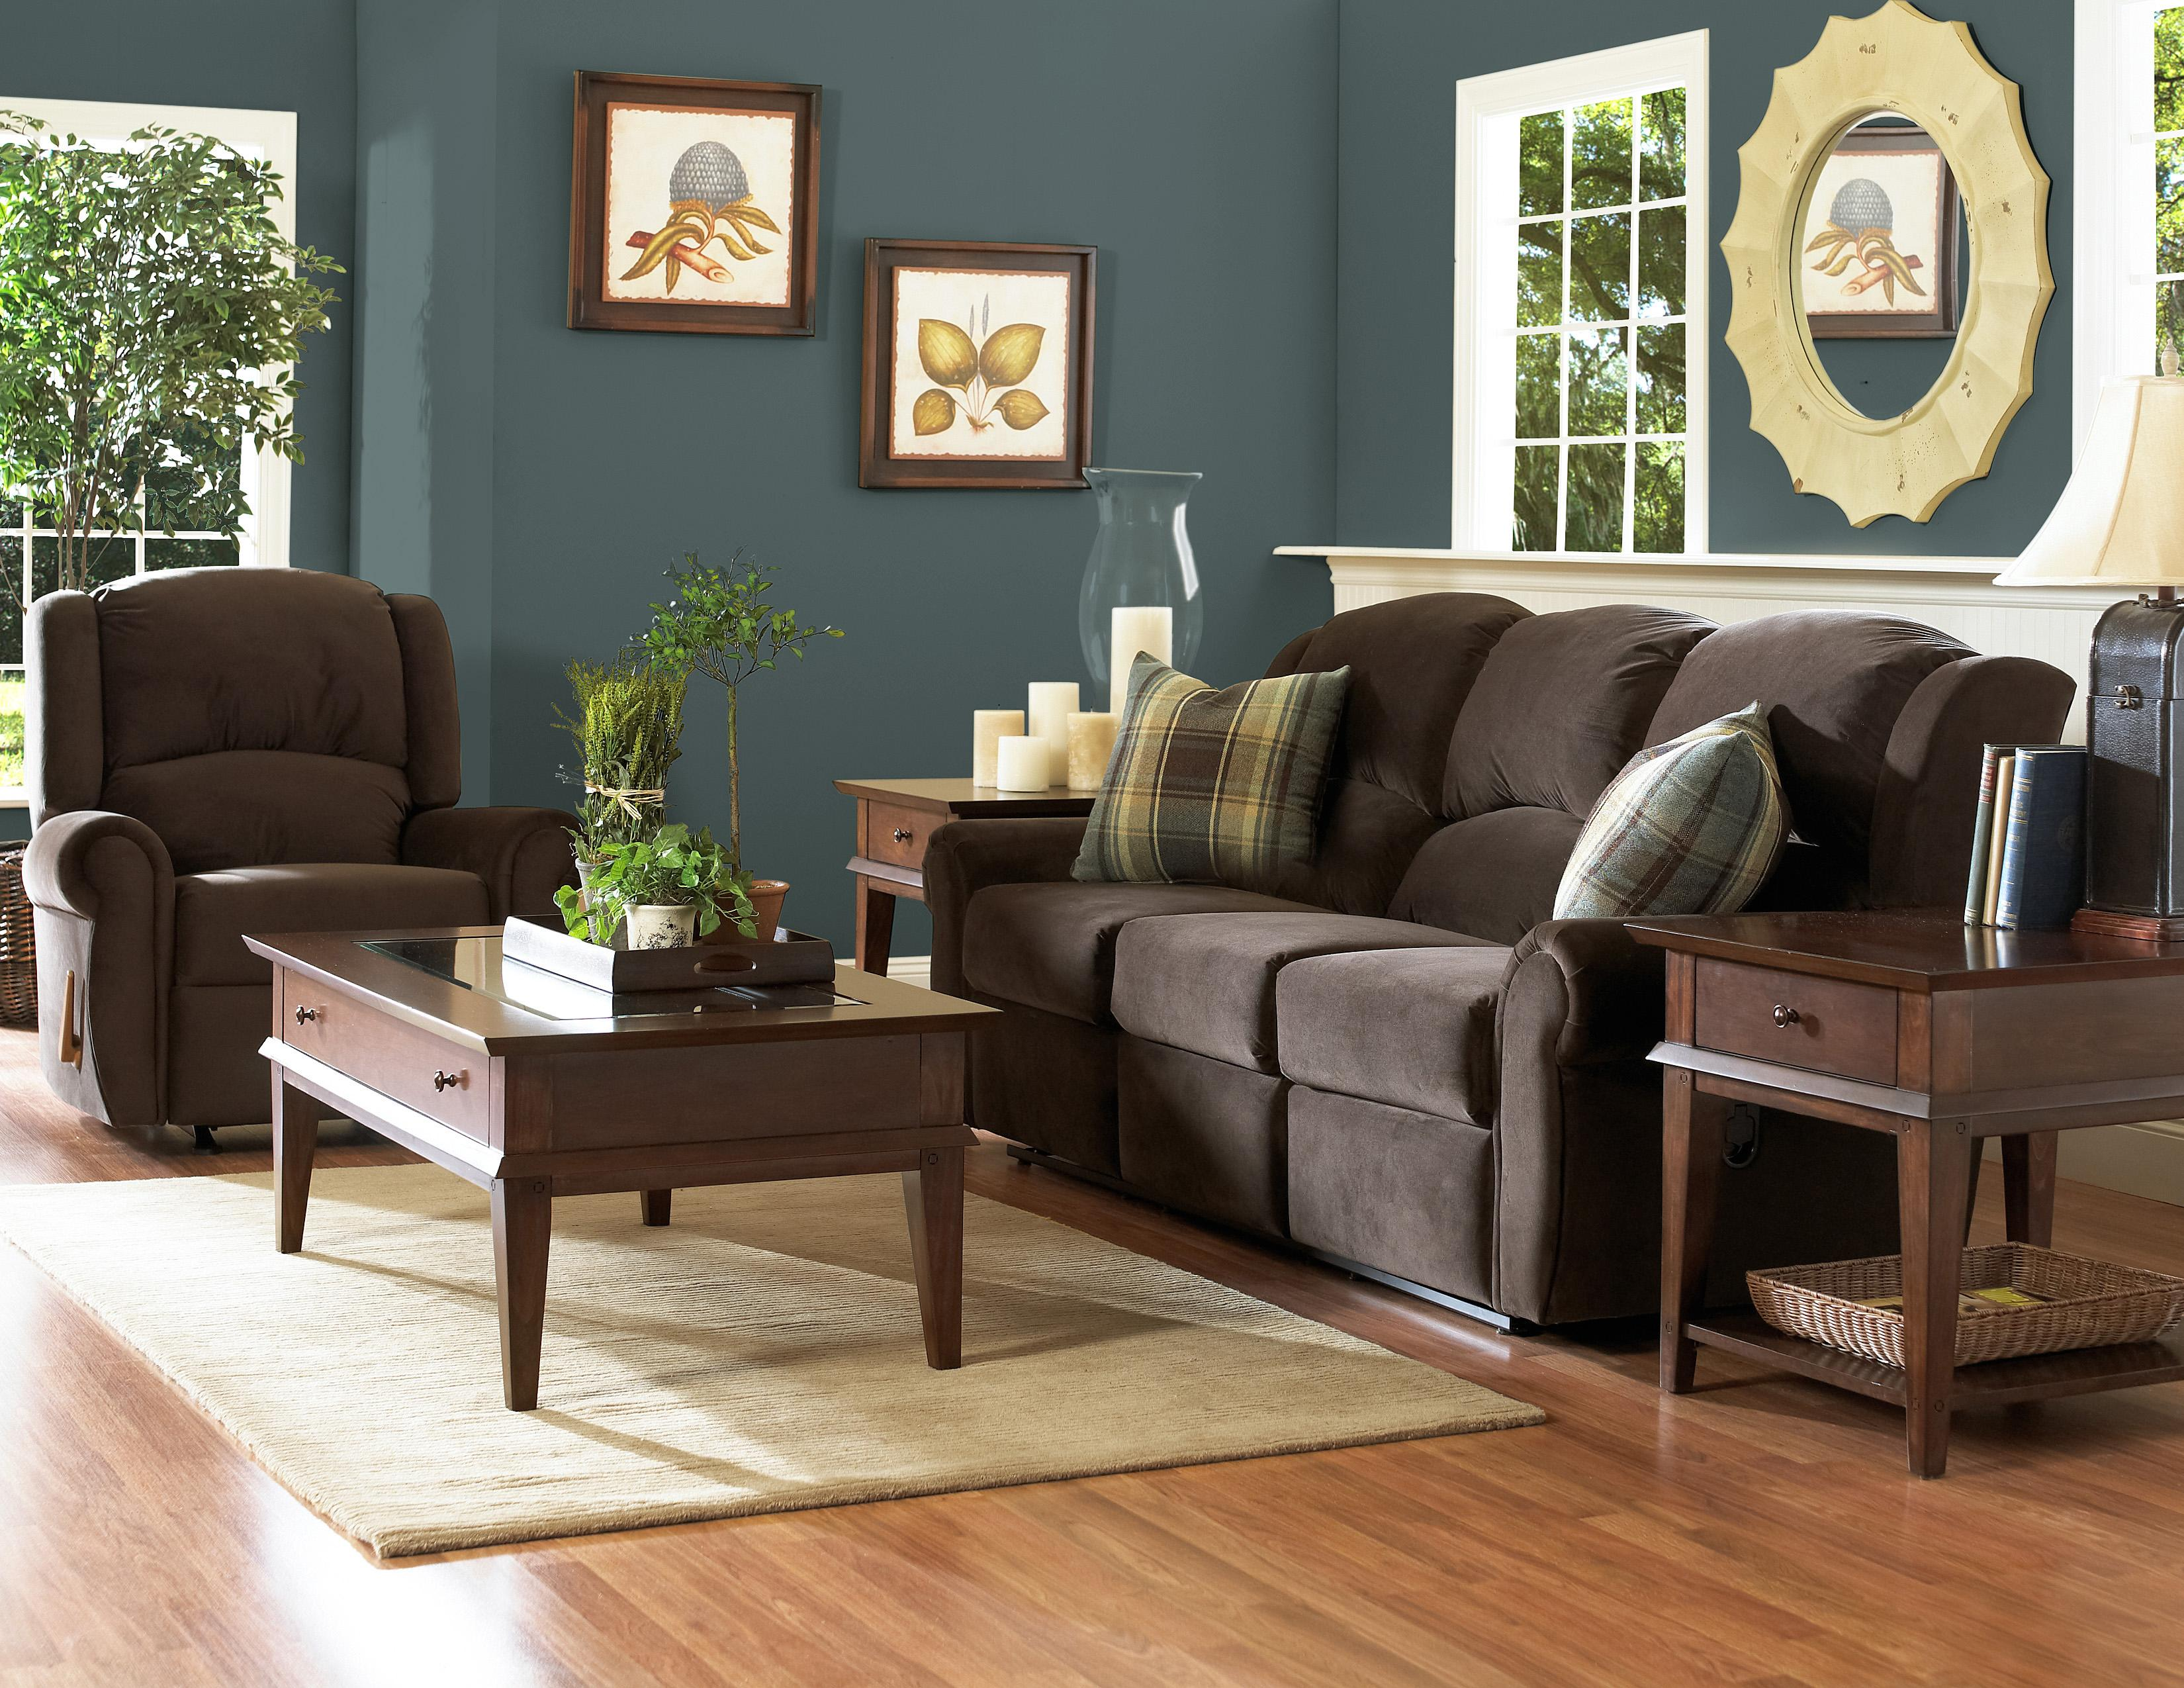 Klaussner McAlister Reclining Living Room Group - Item Number: 32403 Living Room Group 1